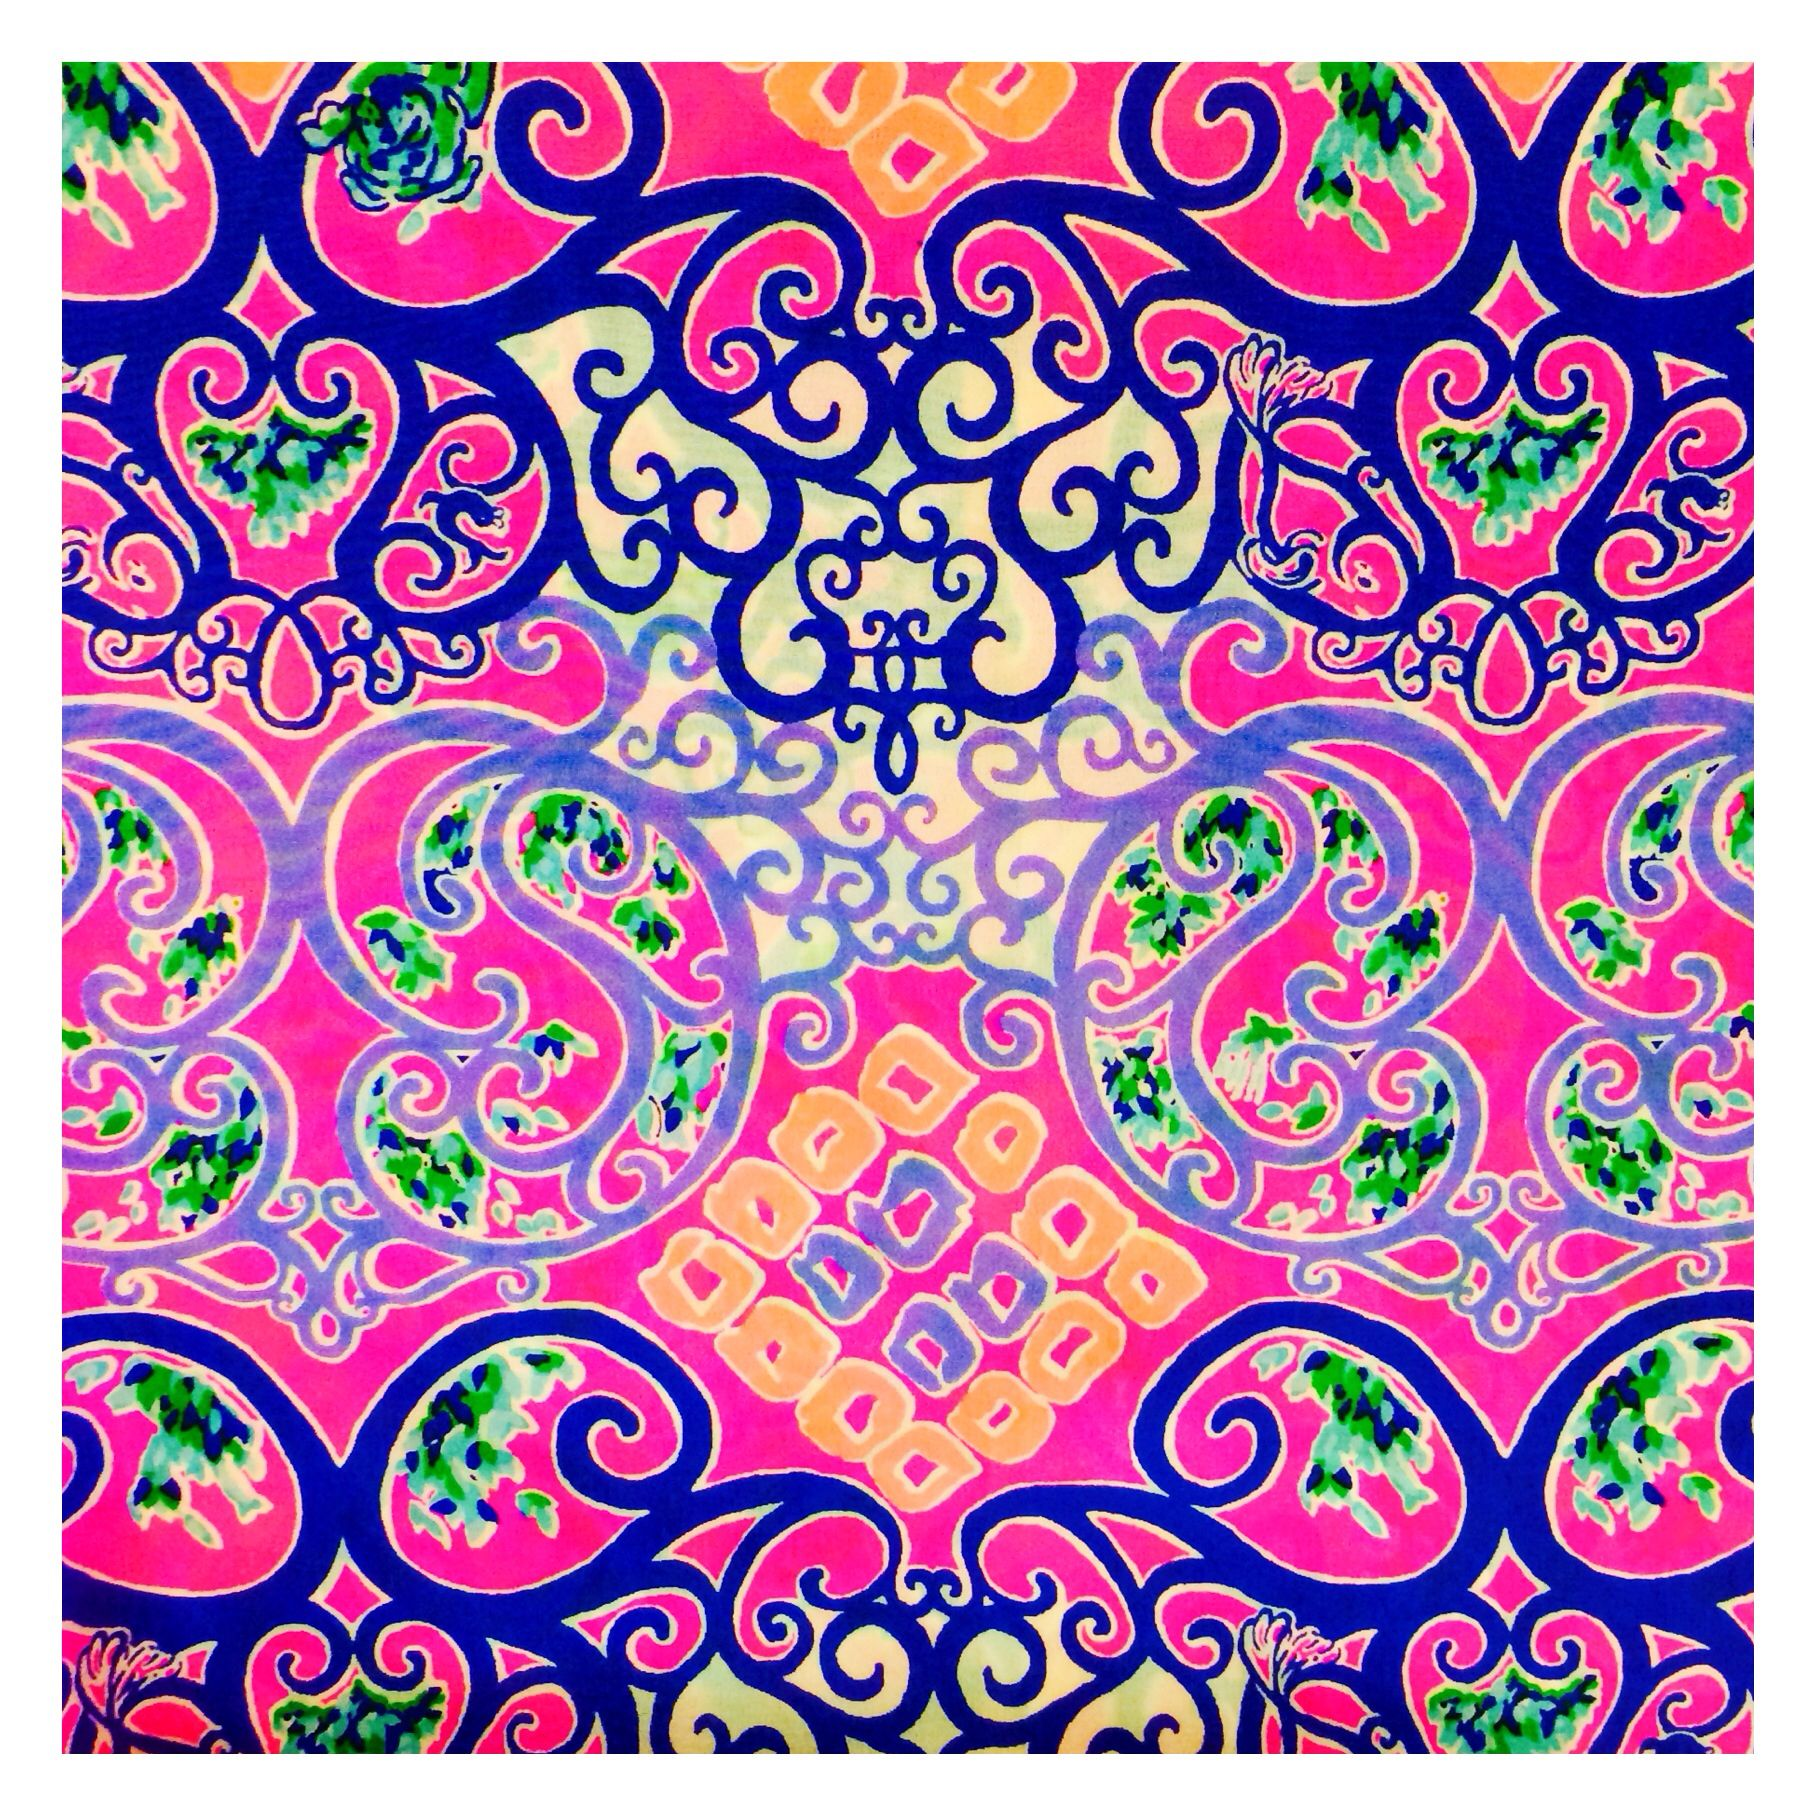 Lilly Pulitzer Patterns Lilly Pulitzer Behind The Gates Lilly Pulitzer Pinterest